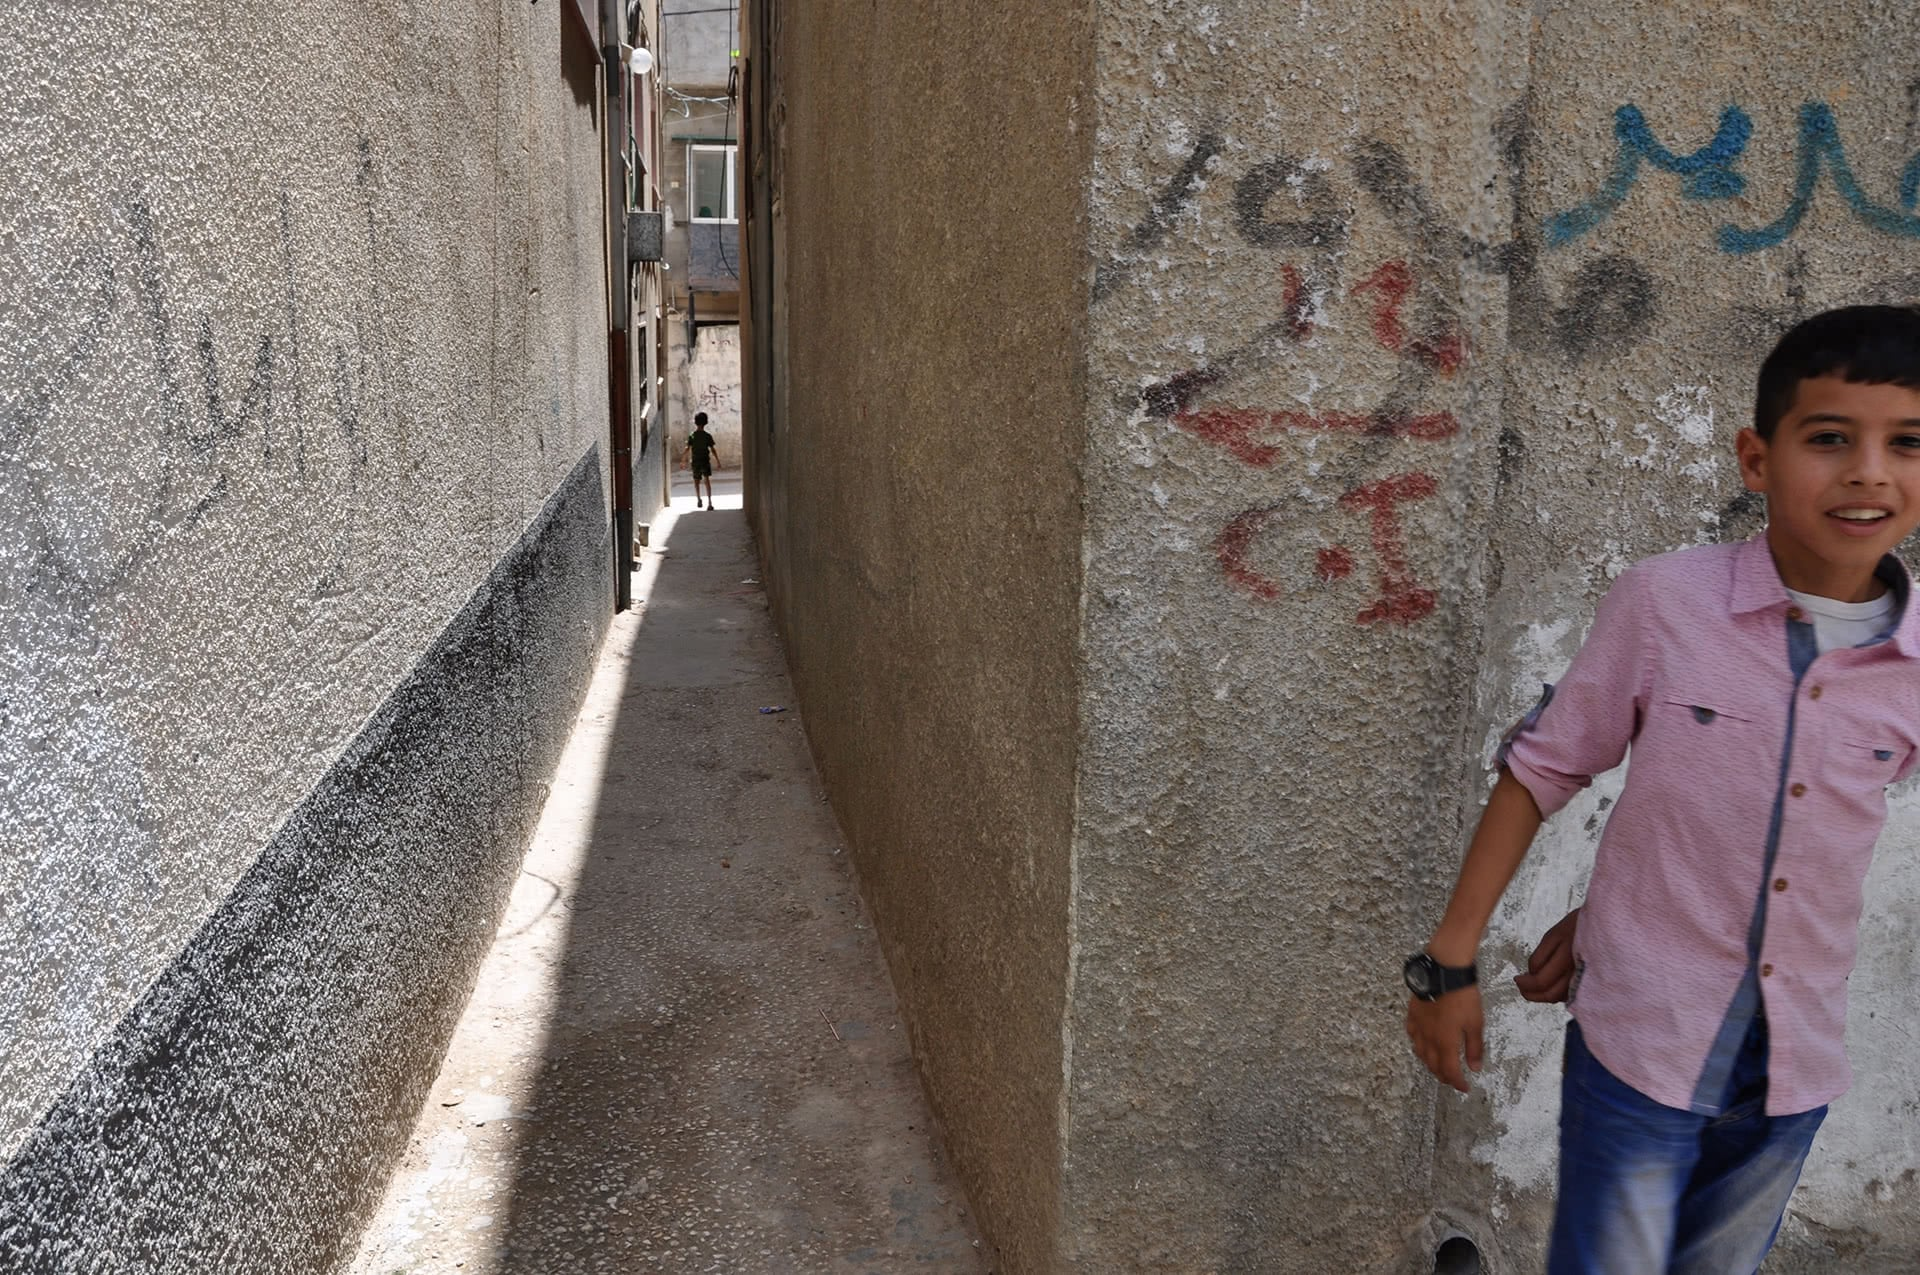 Unable to access safe play areas, children in Fara'a refugee camp spend free time in narrow alleyways and streets. (Photo: DCIP / Emily Thomas)